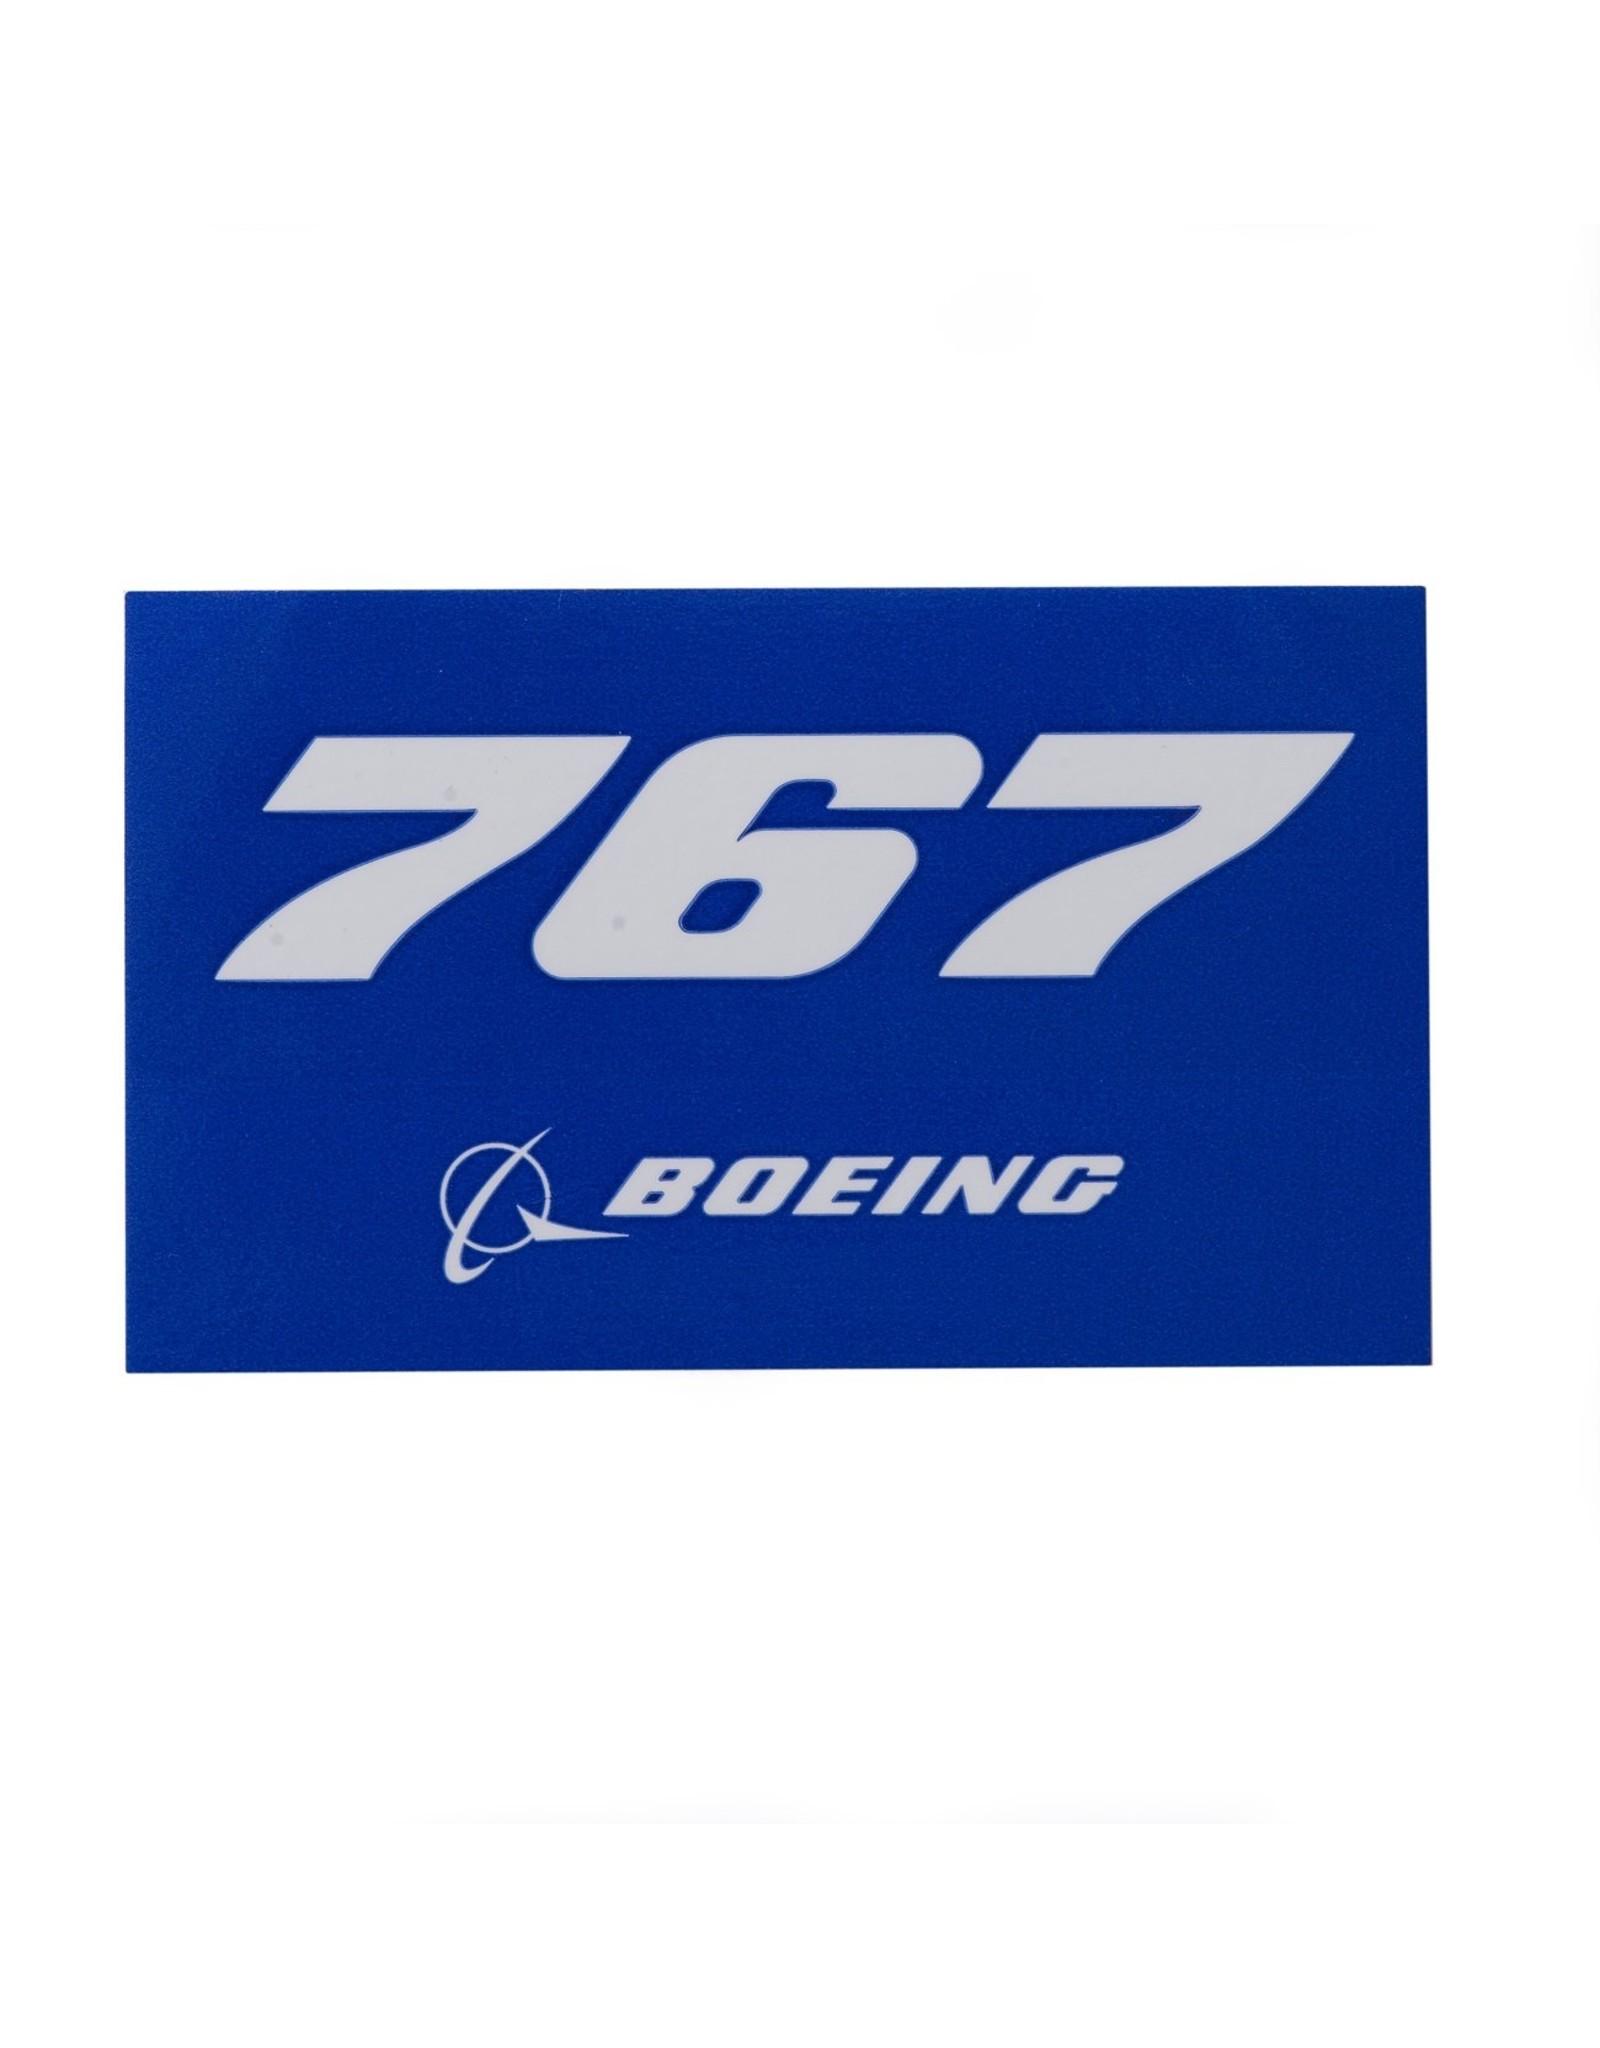 Sticker 767 rectangle